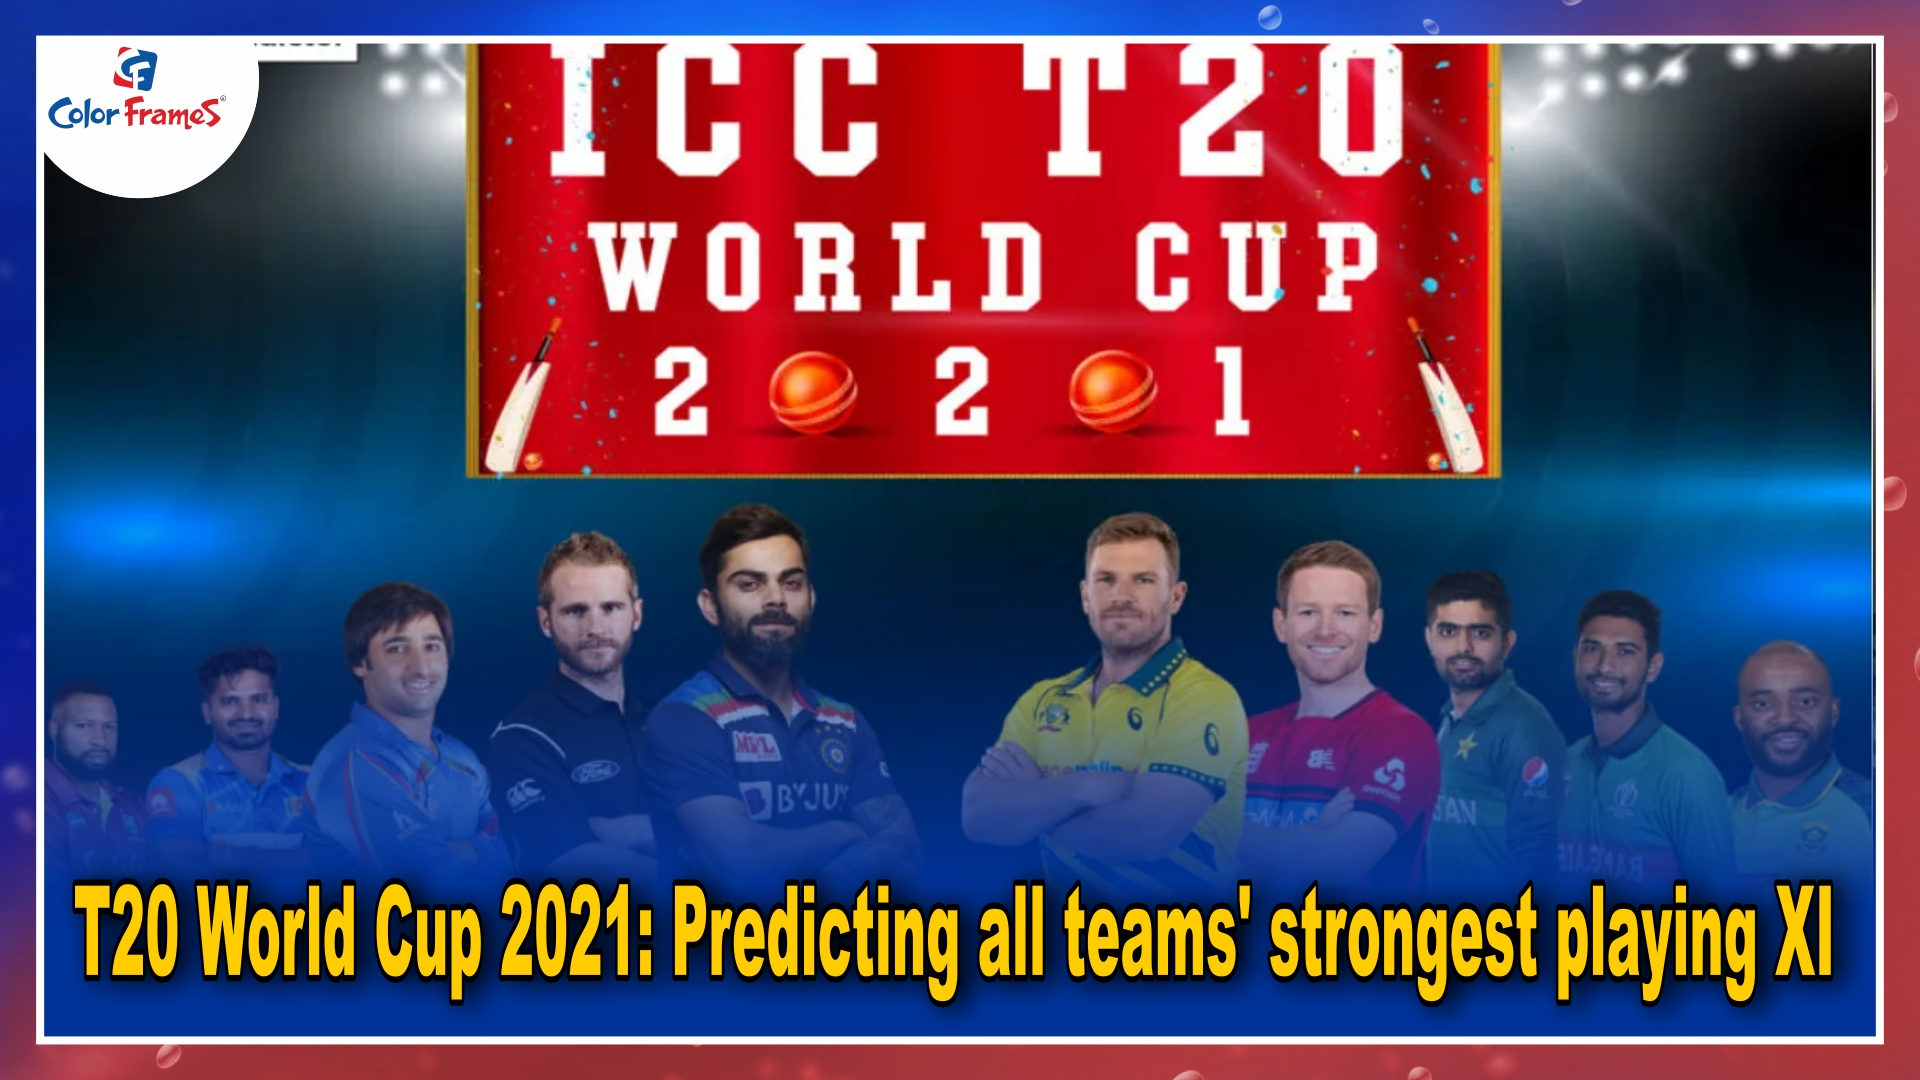 T20 World Cup 2021: Predicting all teams' strongest playing XI